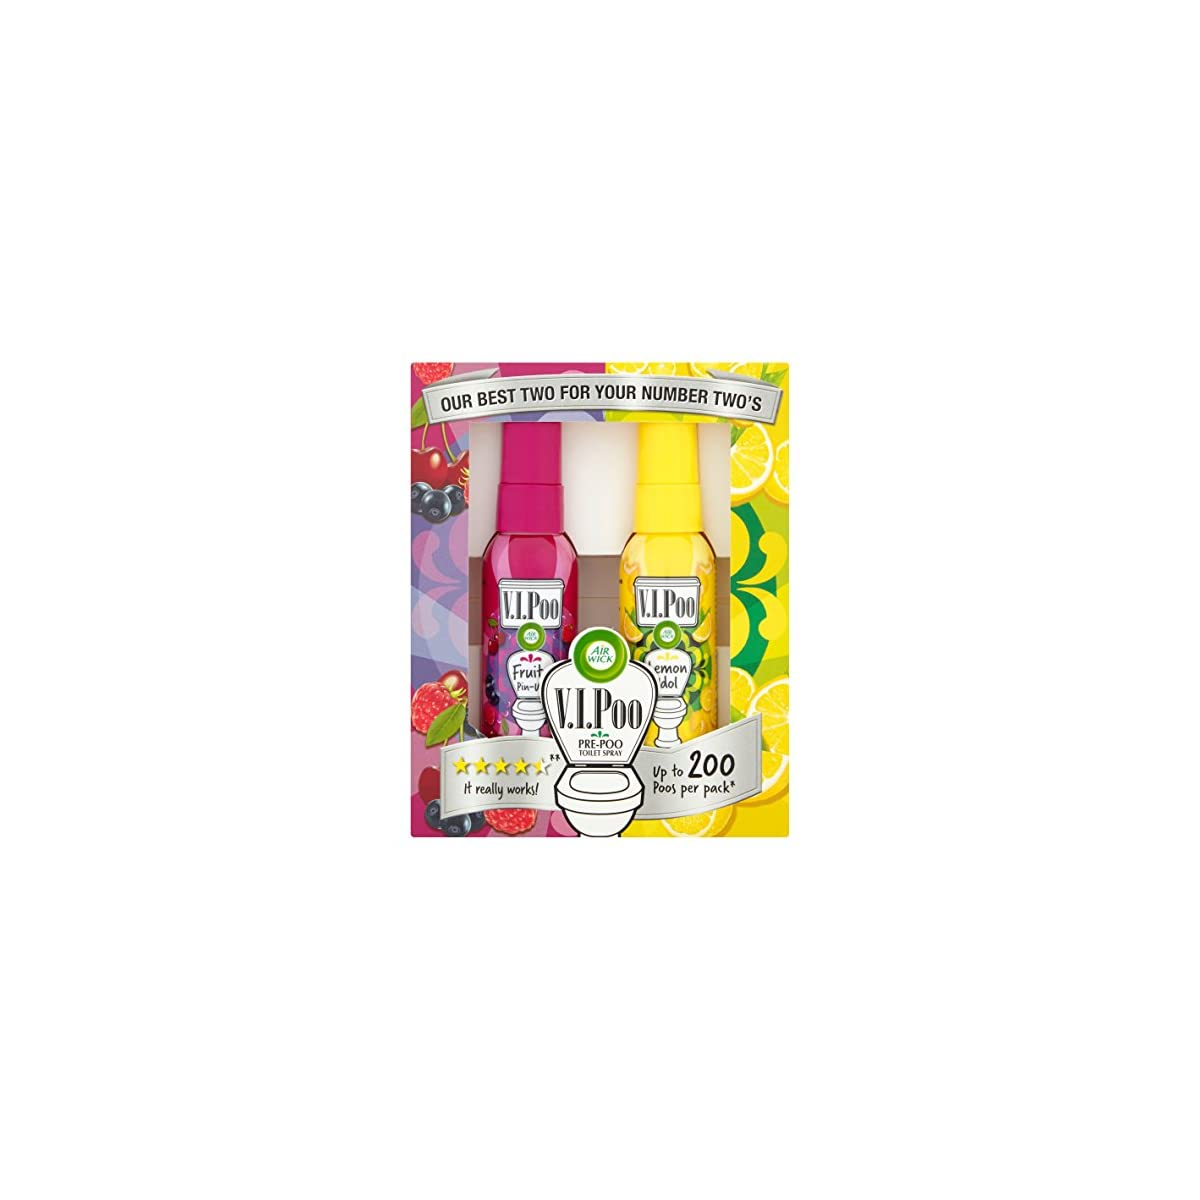 VIPoo toilet spray funny gift for her